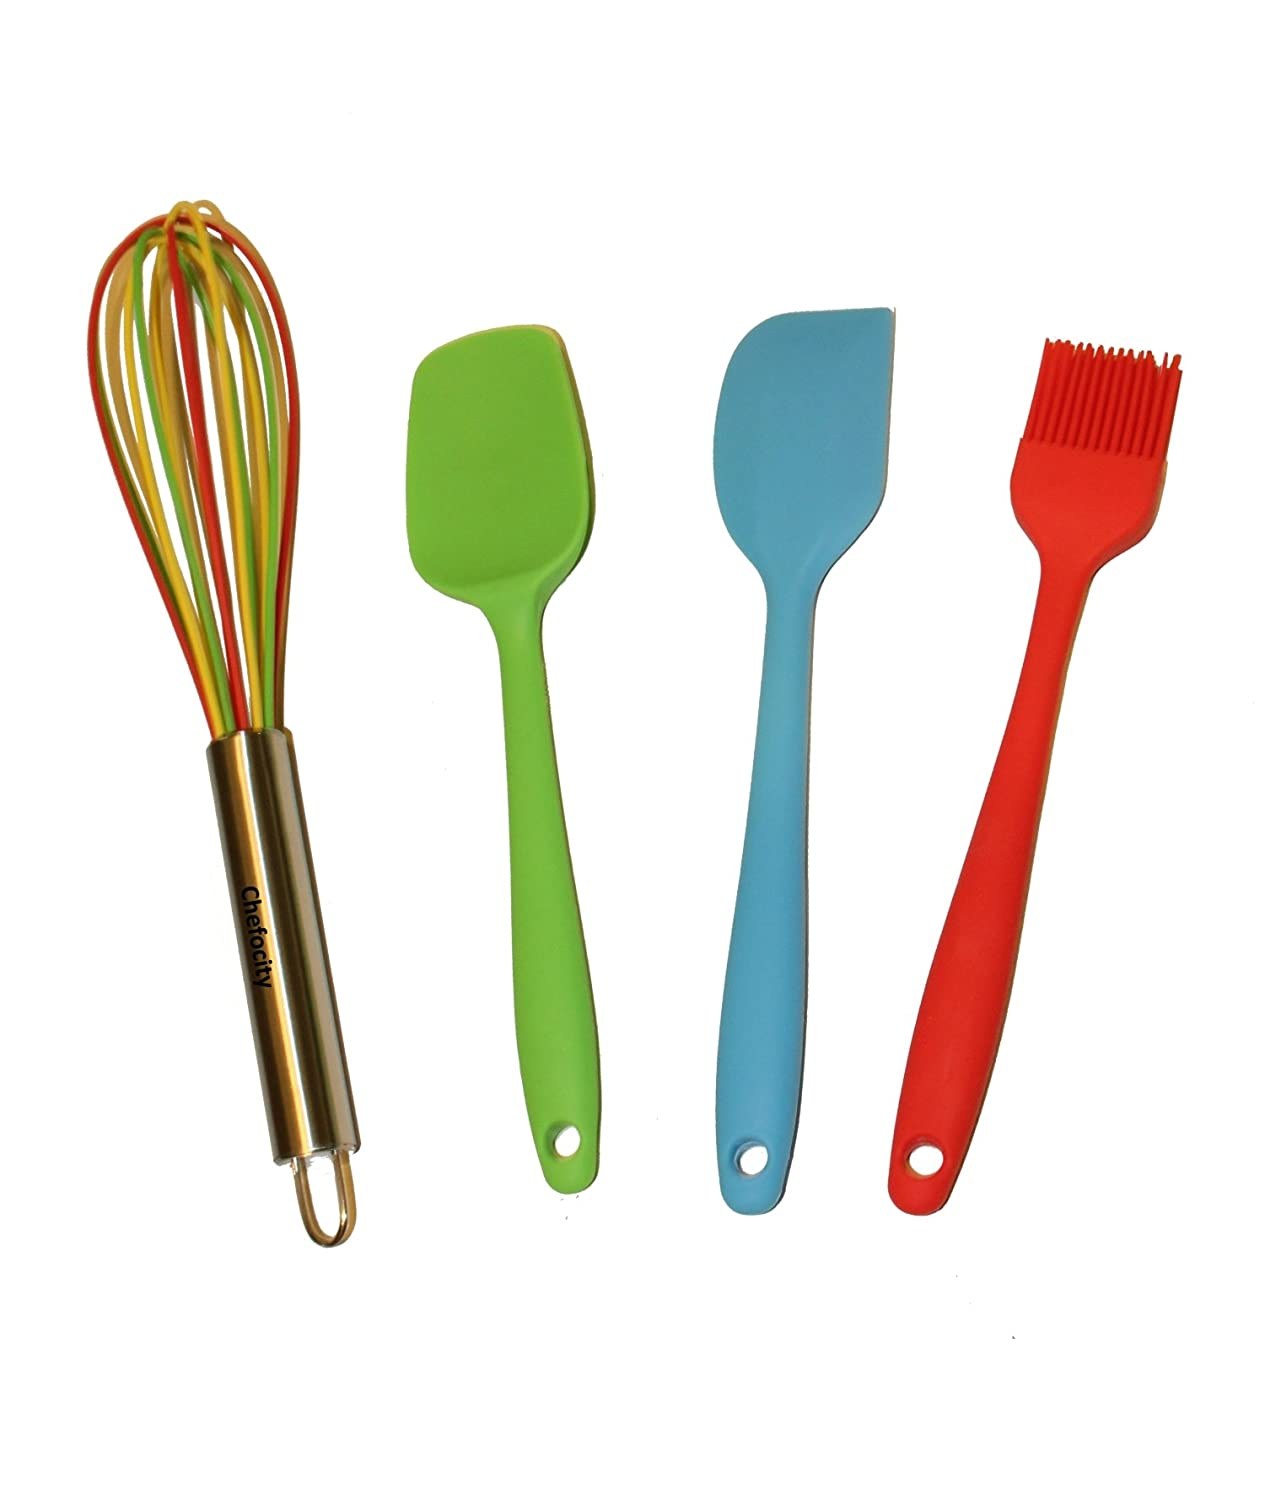 Kids Baking Set - 4 Piece Kids Cooking Utensils